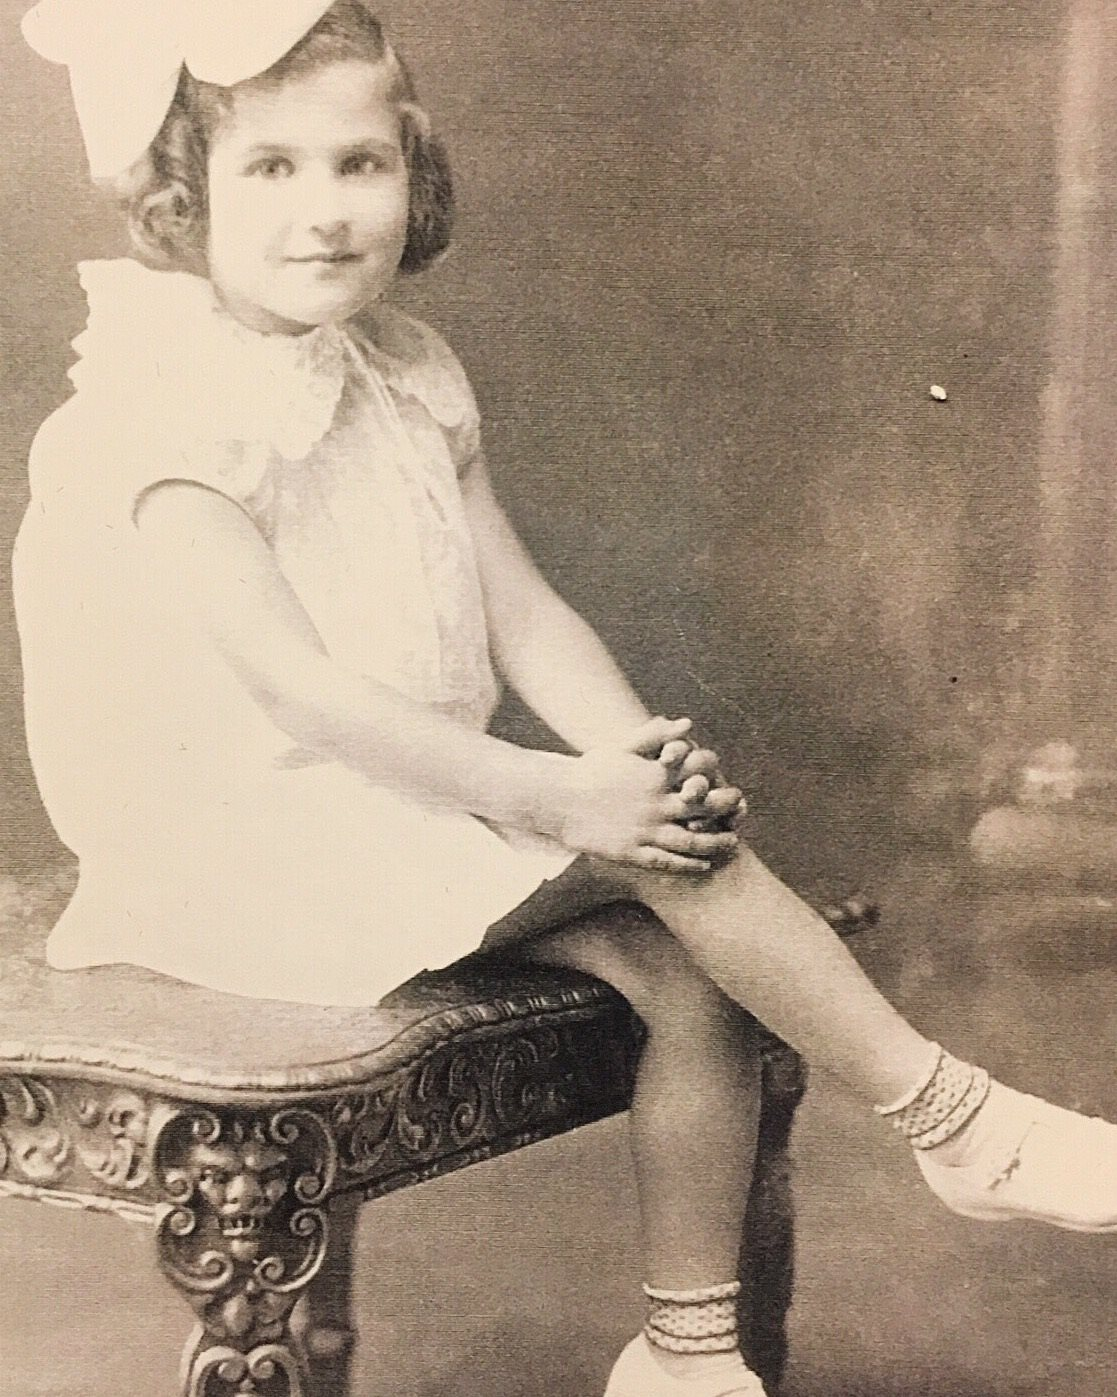 Old photo of little girl wearing white clothing